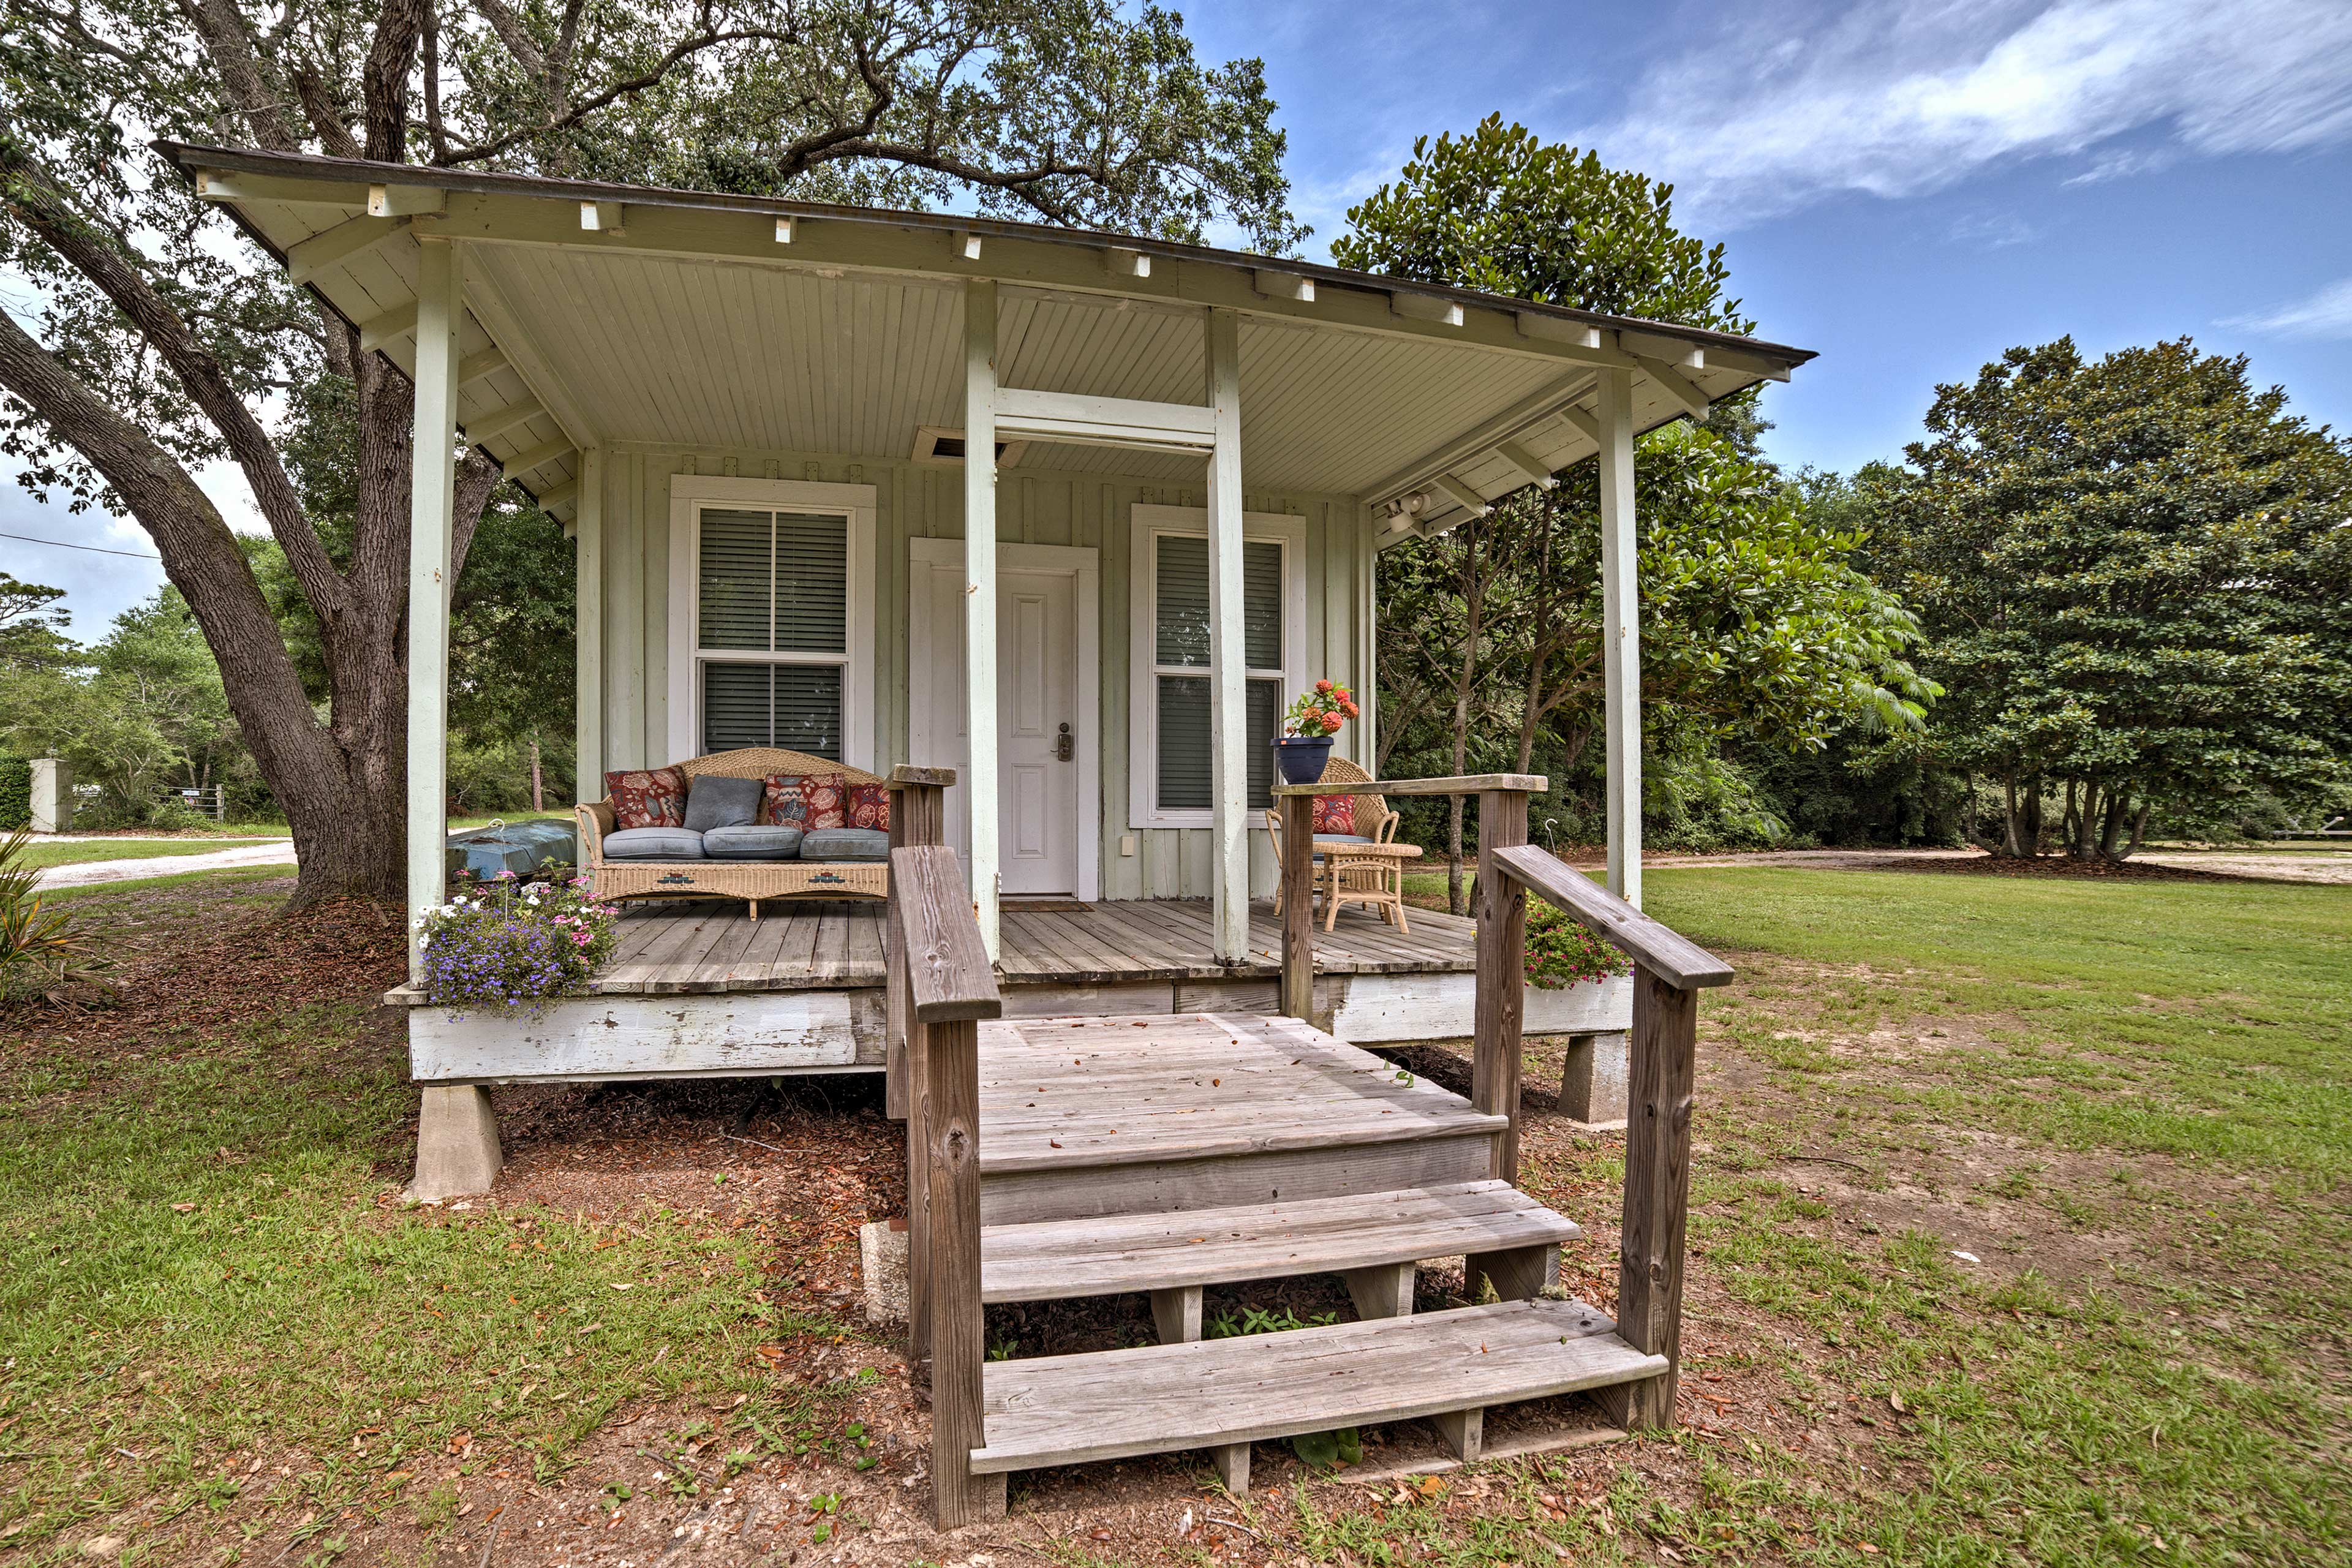 Those seeking more privacy can claim the detached guest house at night.